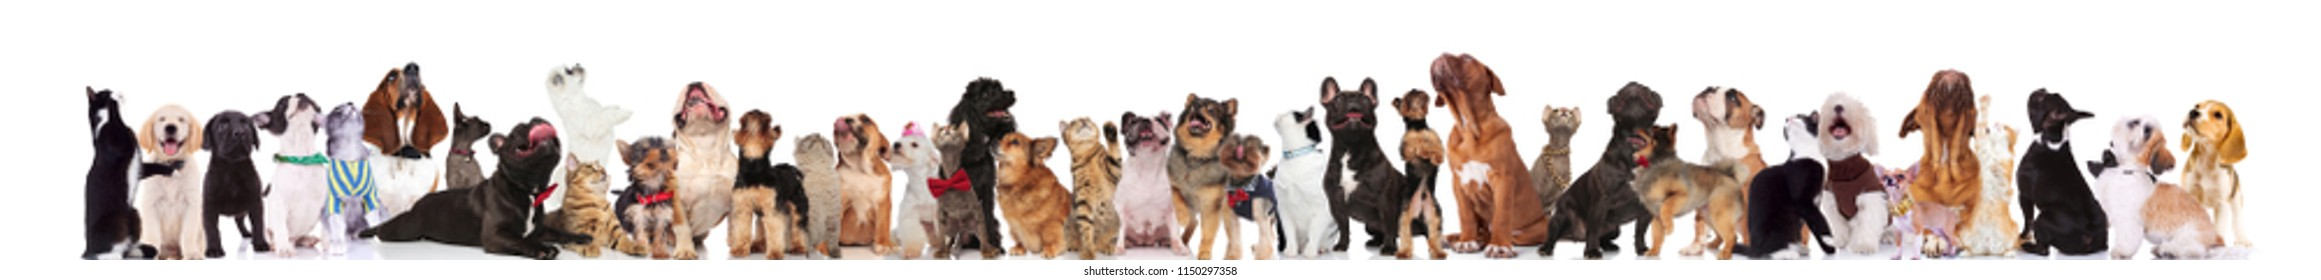 team of many curious cats and dogs wearing bowties and collars looking up while standing, sitting and lying on white background